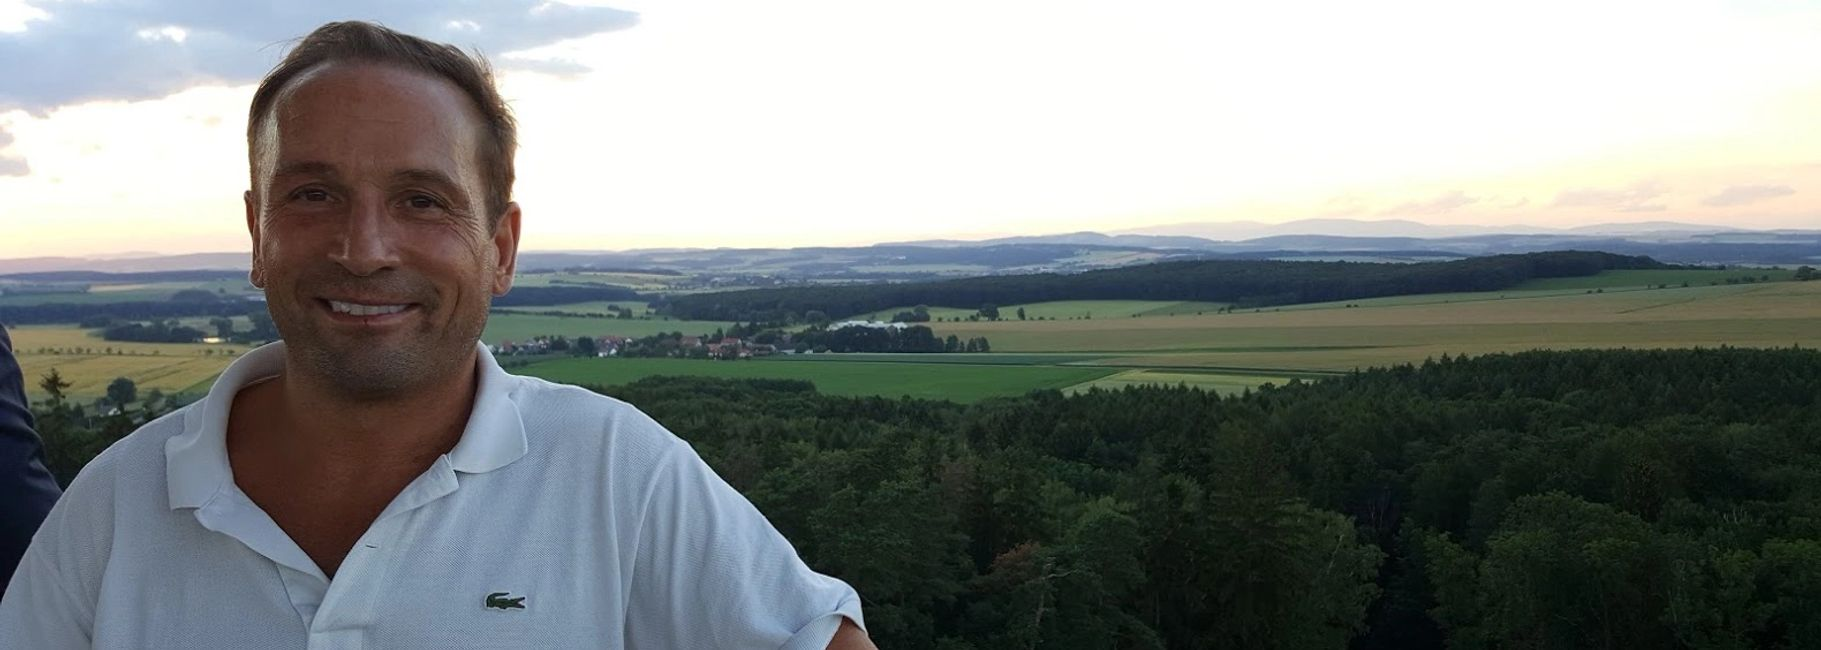 Geoffrey Wawro on the Heights of Chlum, near Sadova, on the battlefield of Koeniggraetz.